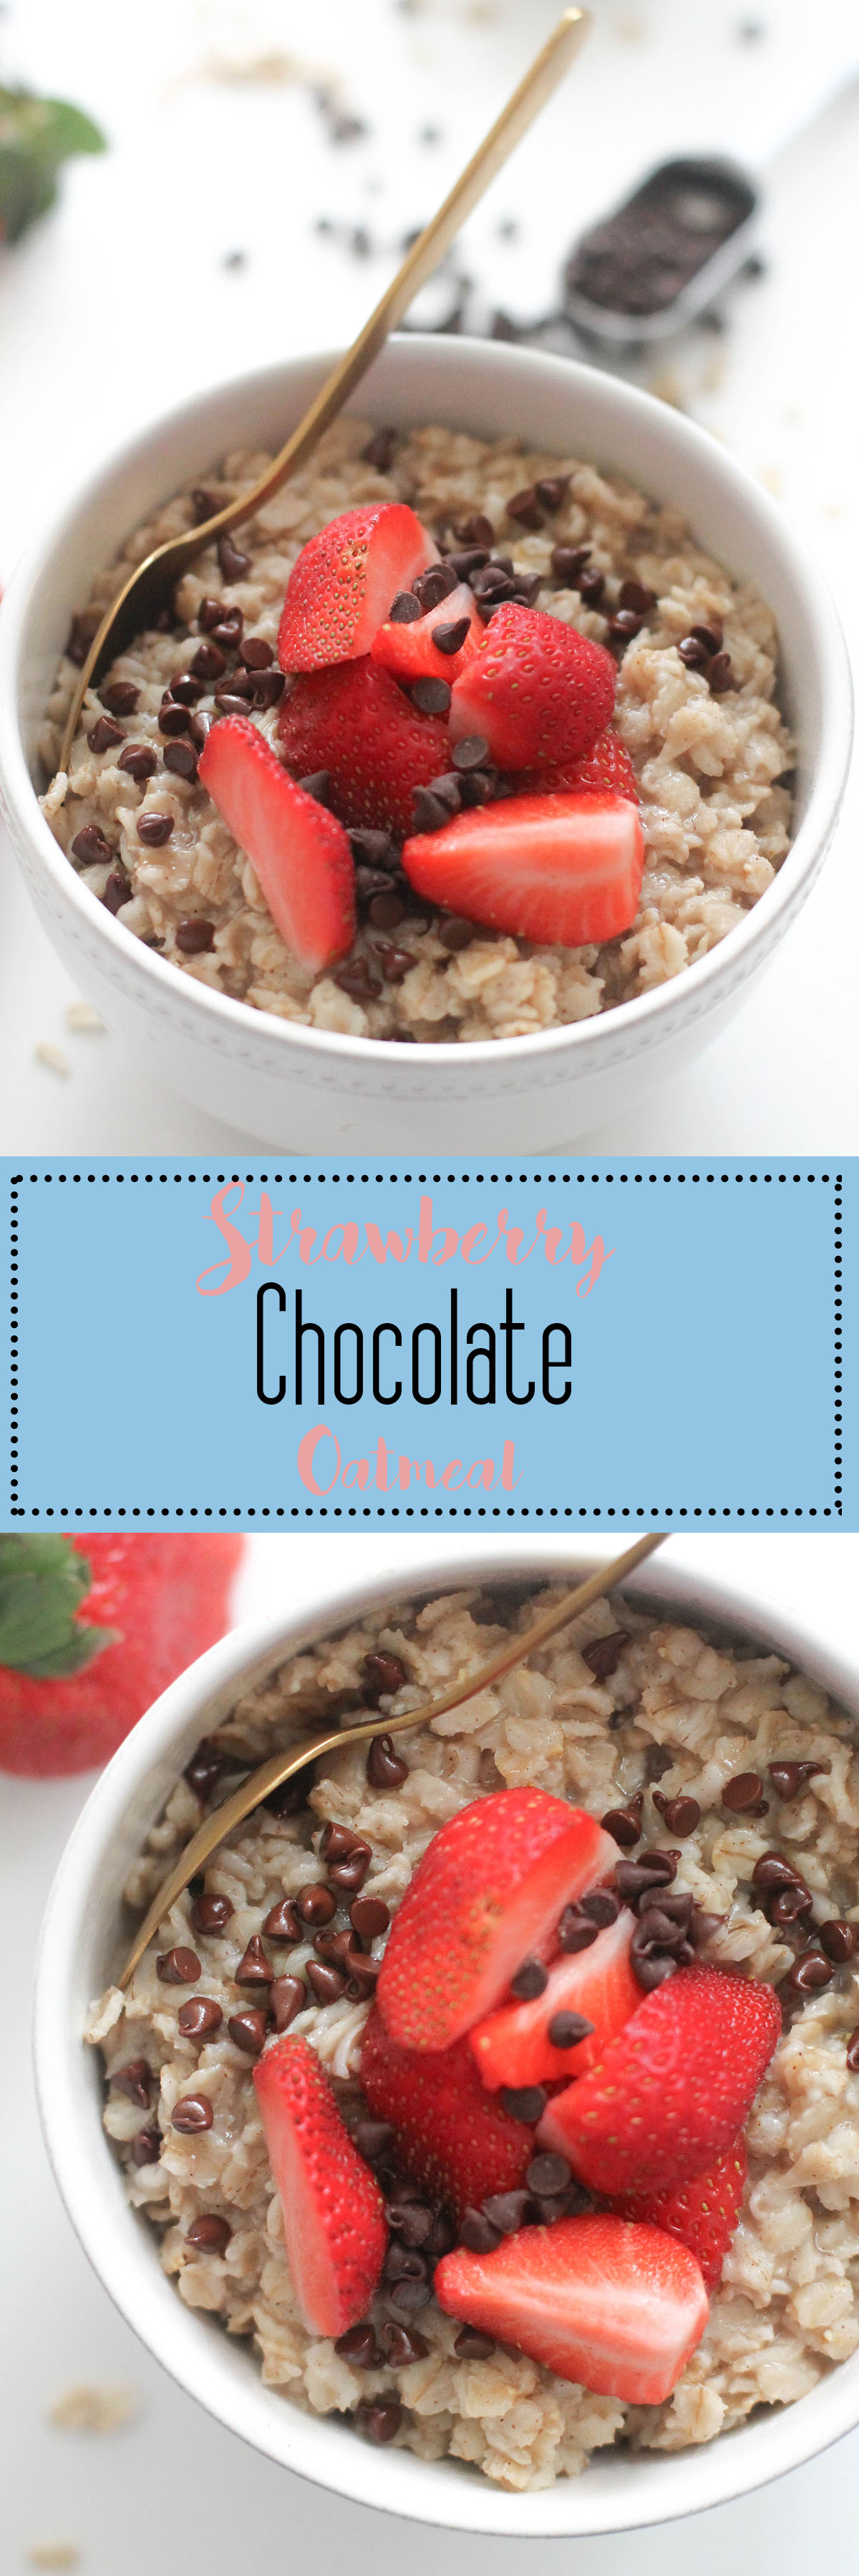 This strawberry chocolate oatmeal is vegan, gluten free, and absolutely delicious. It comes together in under 20 minutes and is the perfect dessert for breakfast!